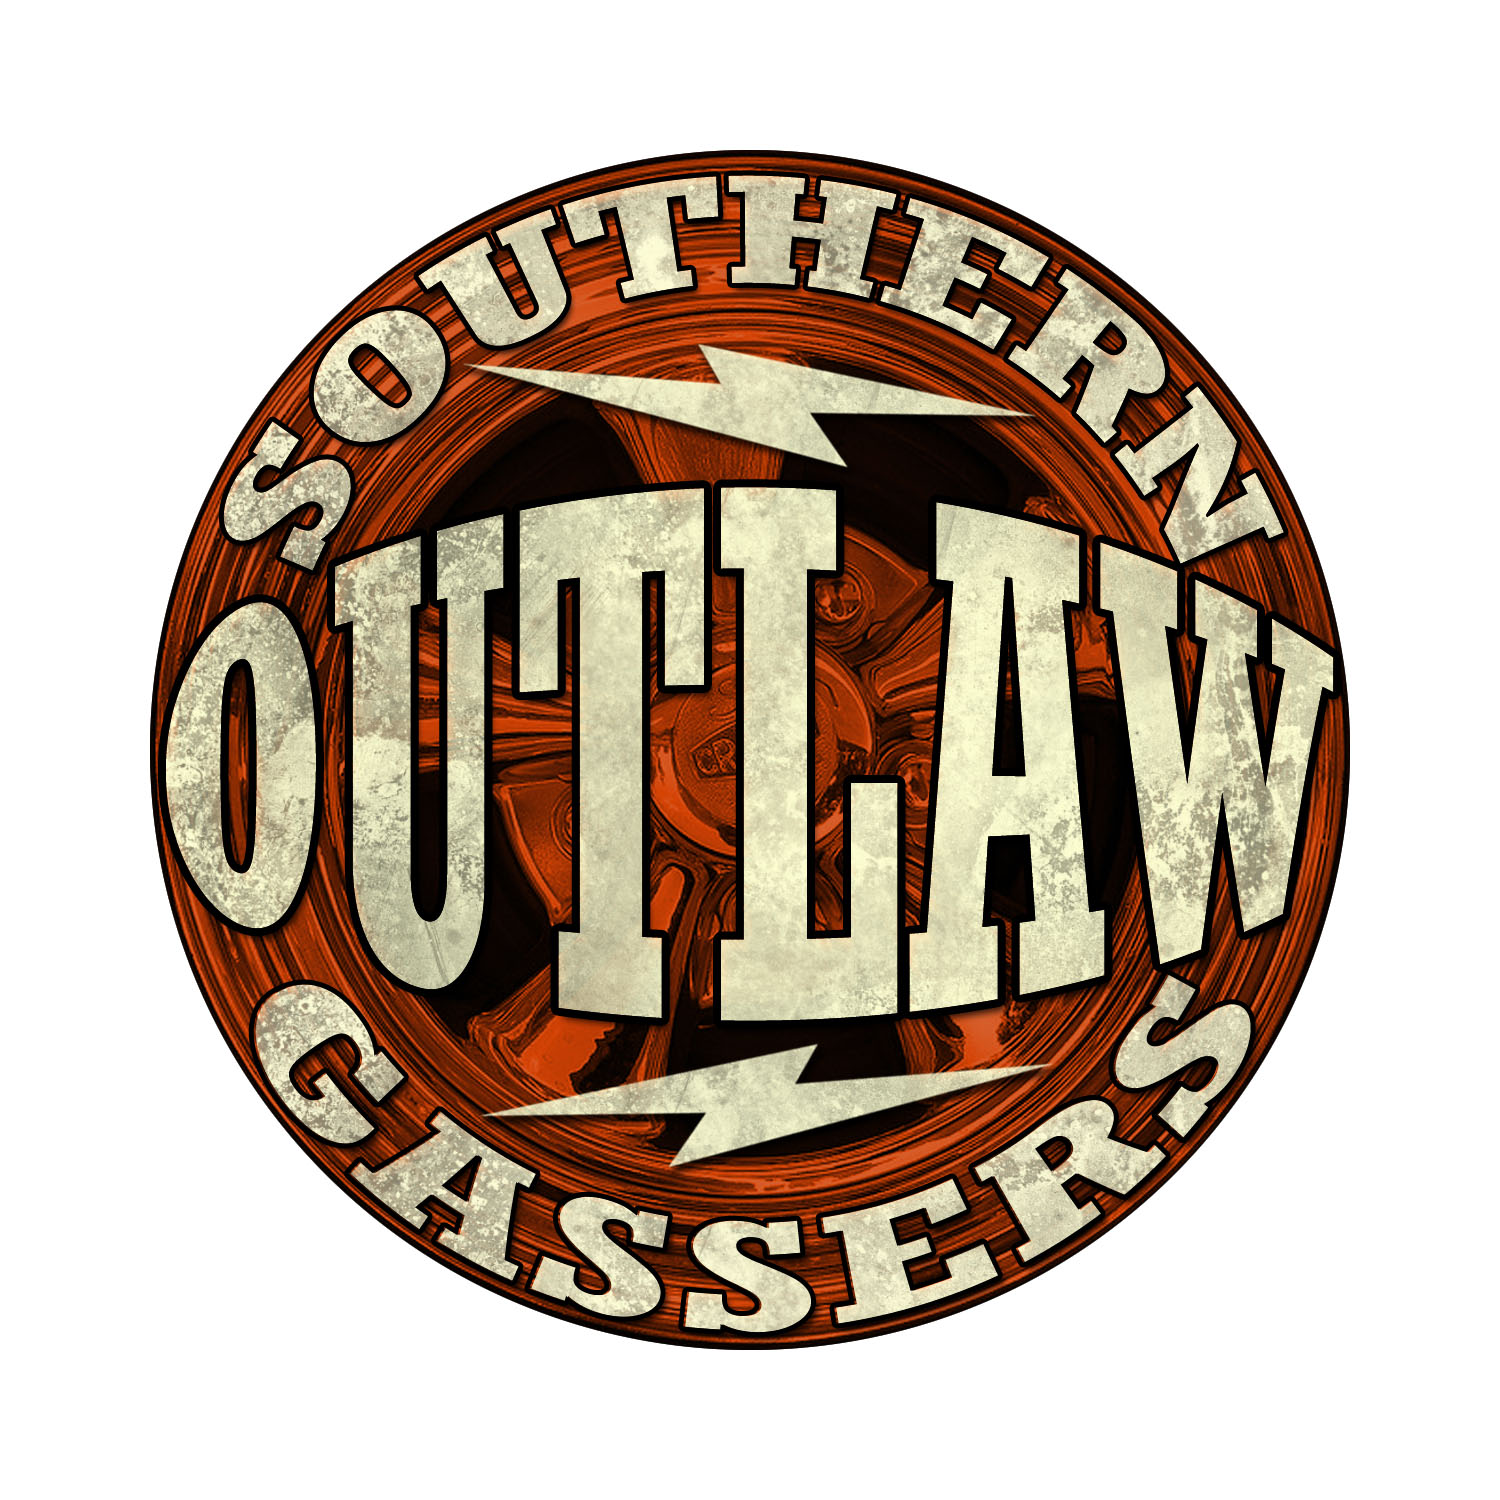 SOUTHERN OUTLAW GASSERS – Emerald Coast Dragway